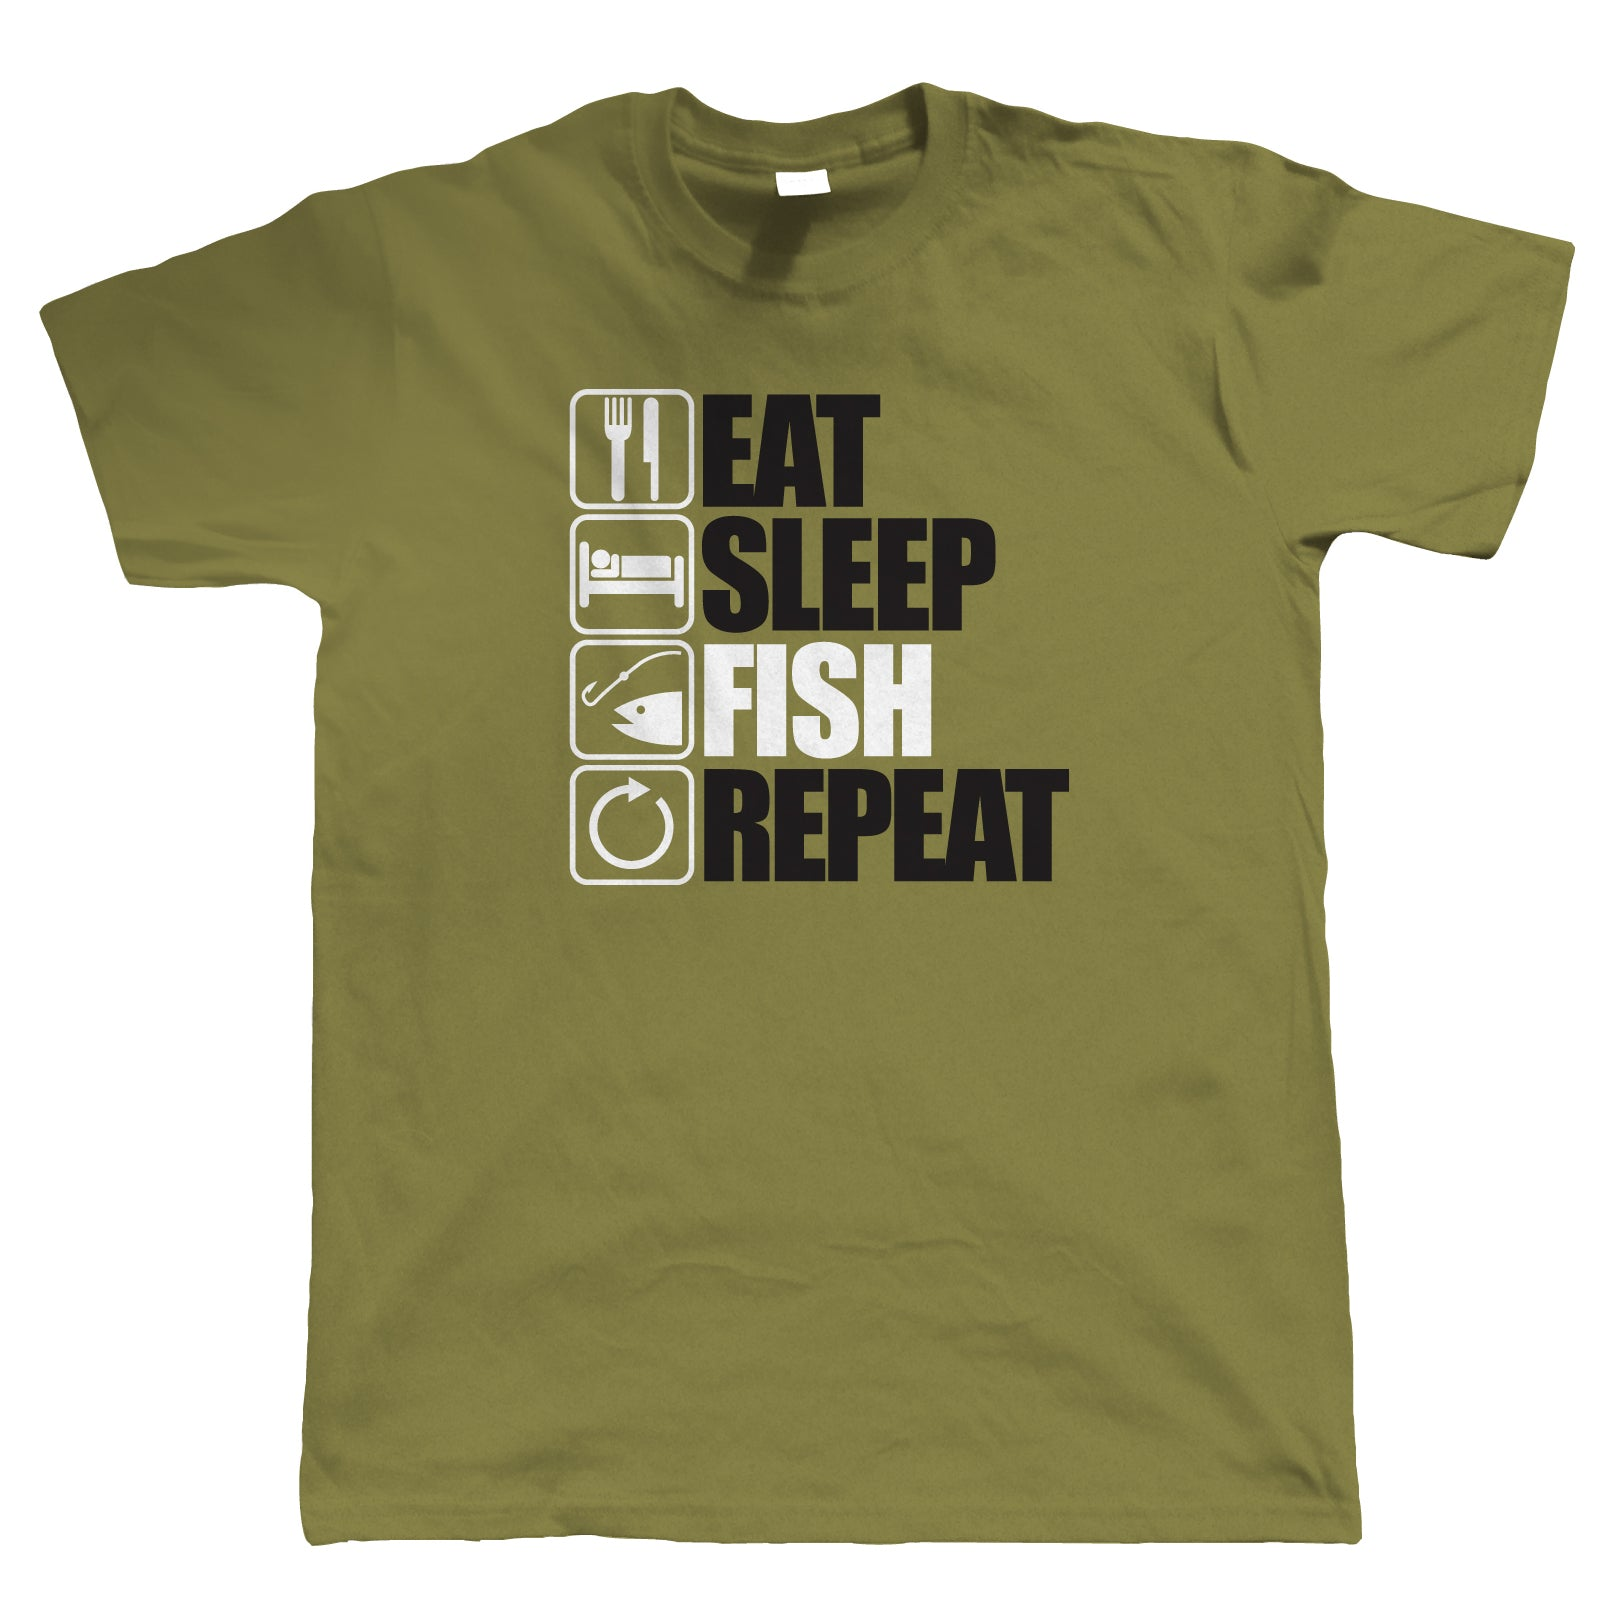 Eat Sleep Fish Repeat, Mens Funny Fishing T Shirt | Coarse Carp Sea Match Fly Specimen Tackle Fishermen Clothing Angling Angler | Cool Birthday Christmas Gift Present Him Dad Husband Son Grandad